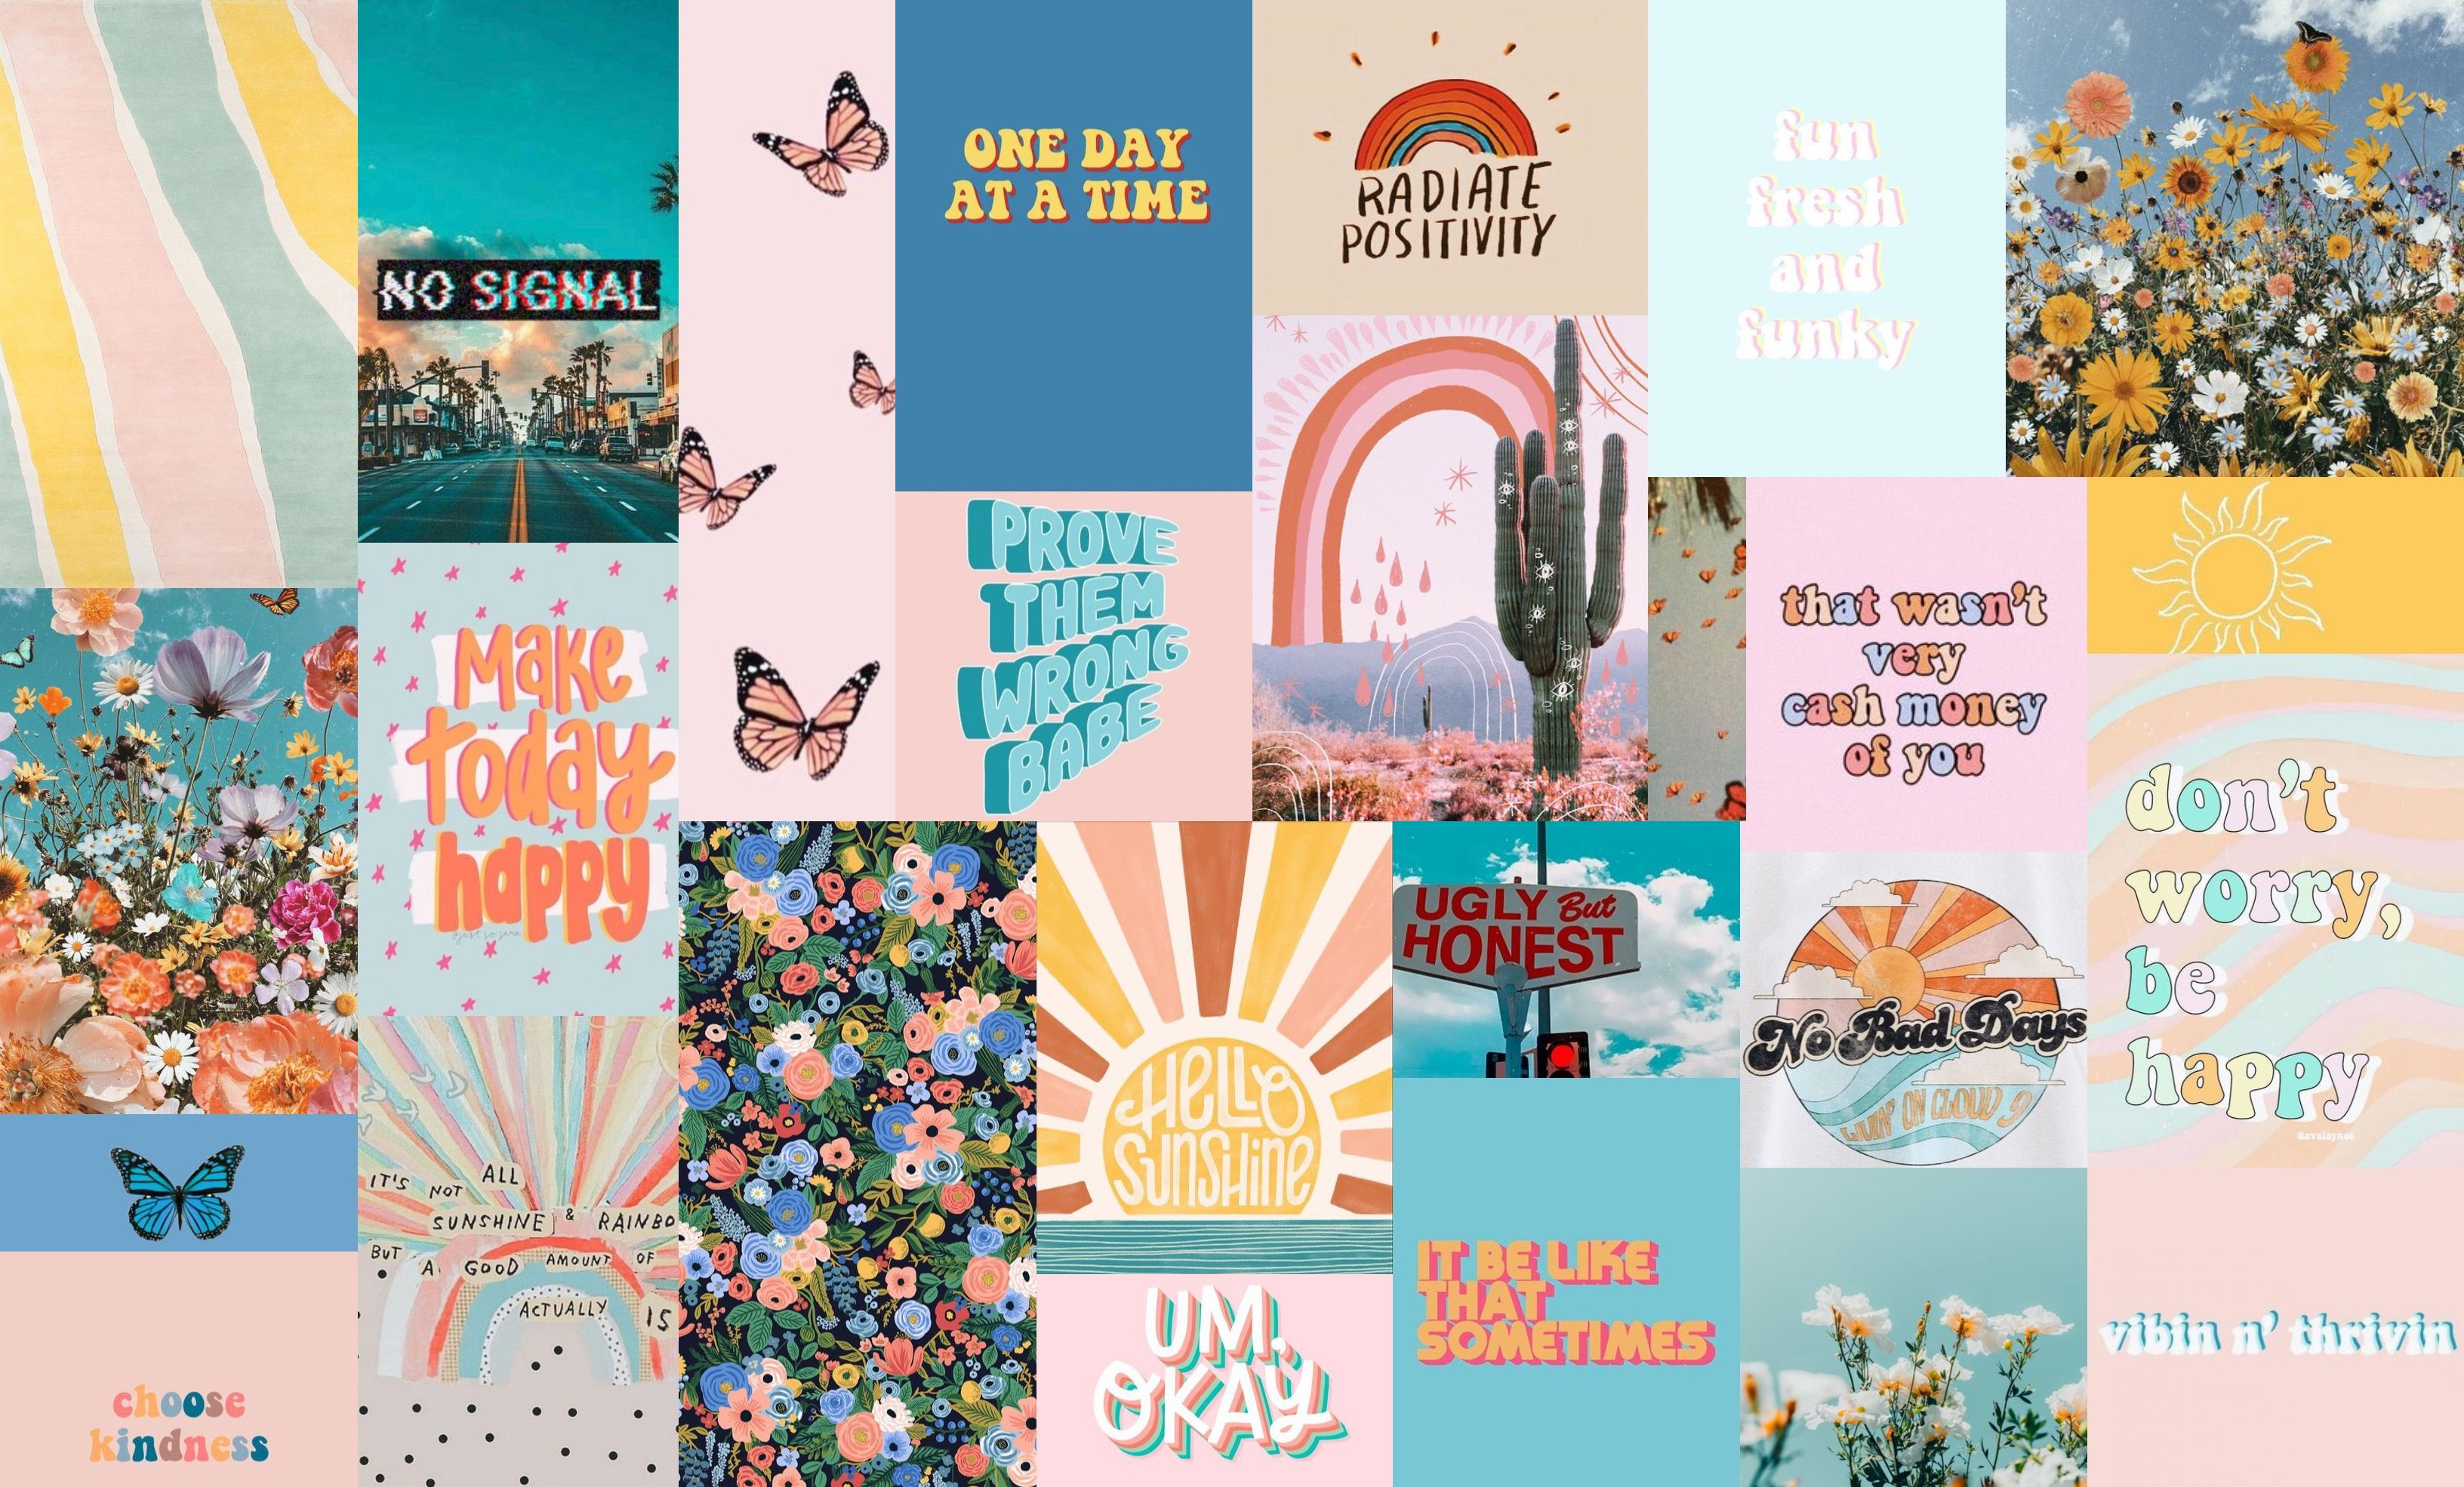 Wallpaper Lockscreen Desktop Blue Ocean Collage Vsco Peace Aesthetic Pink In 2020 Aesthetic Desktop Wallpaper Desktop Wallpaper Art Laptop Wallpaper